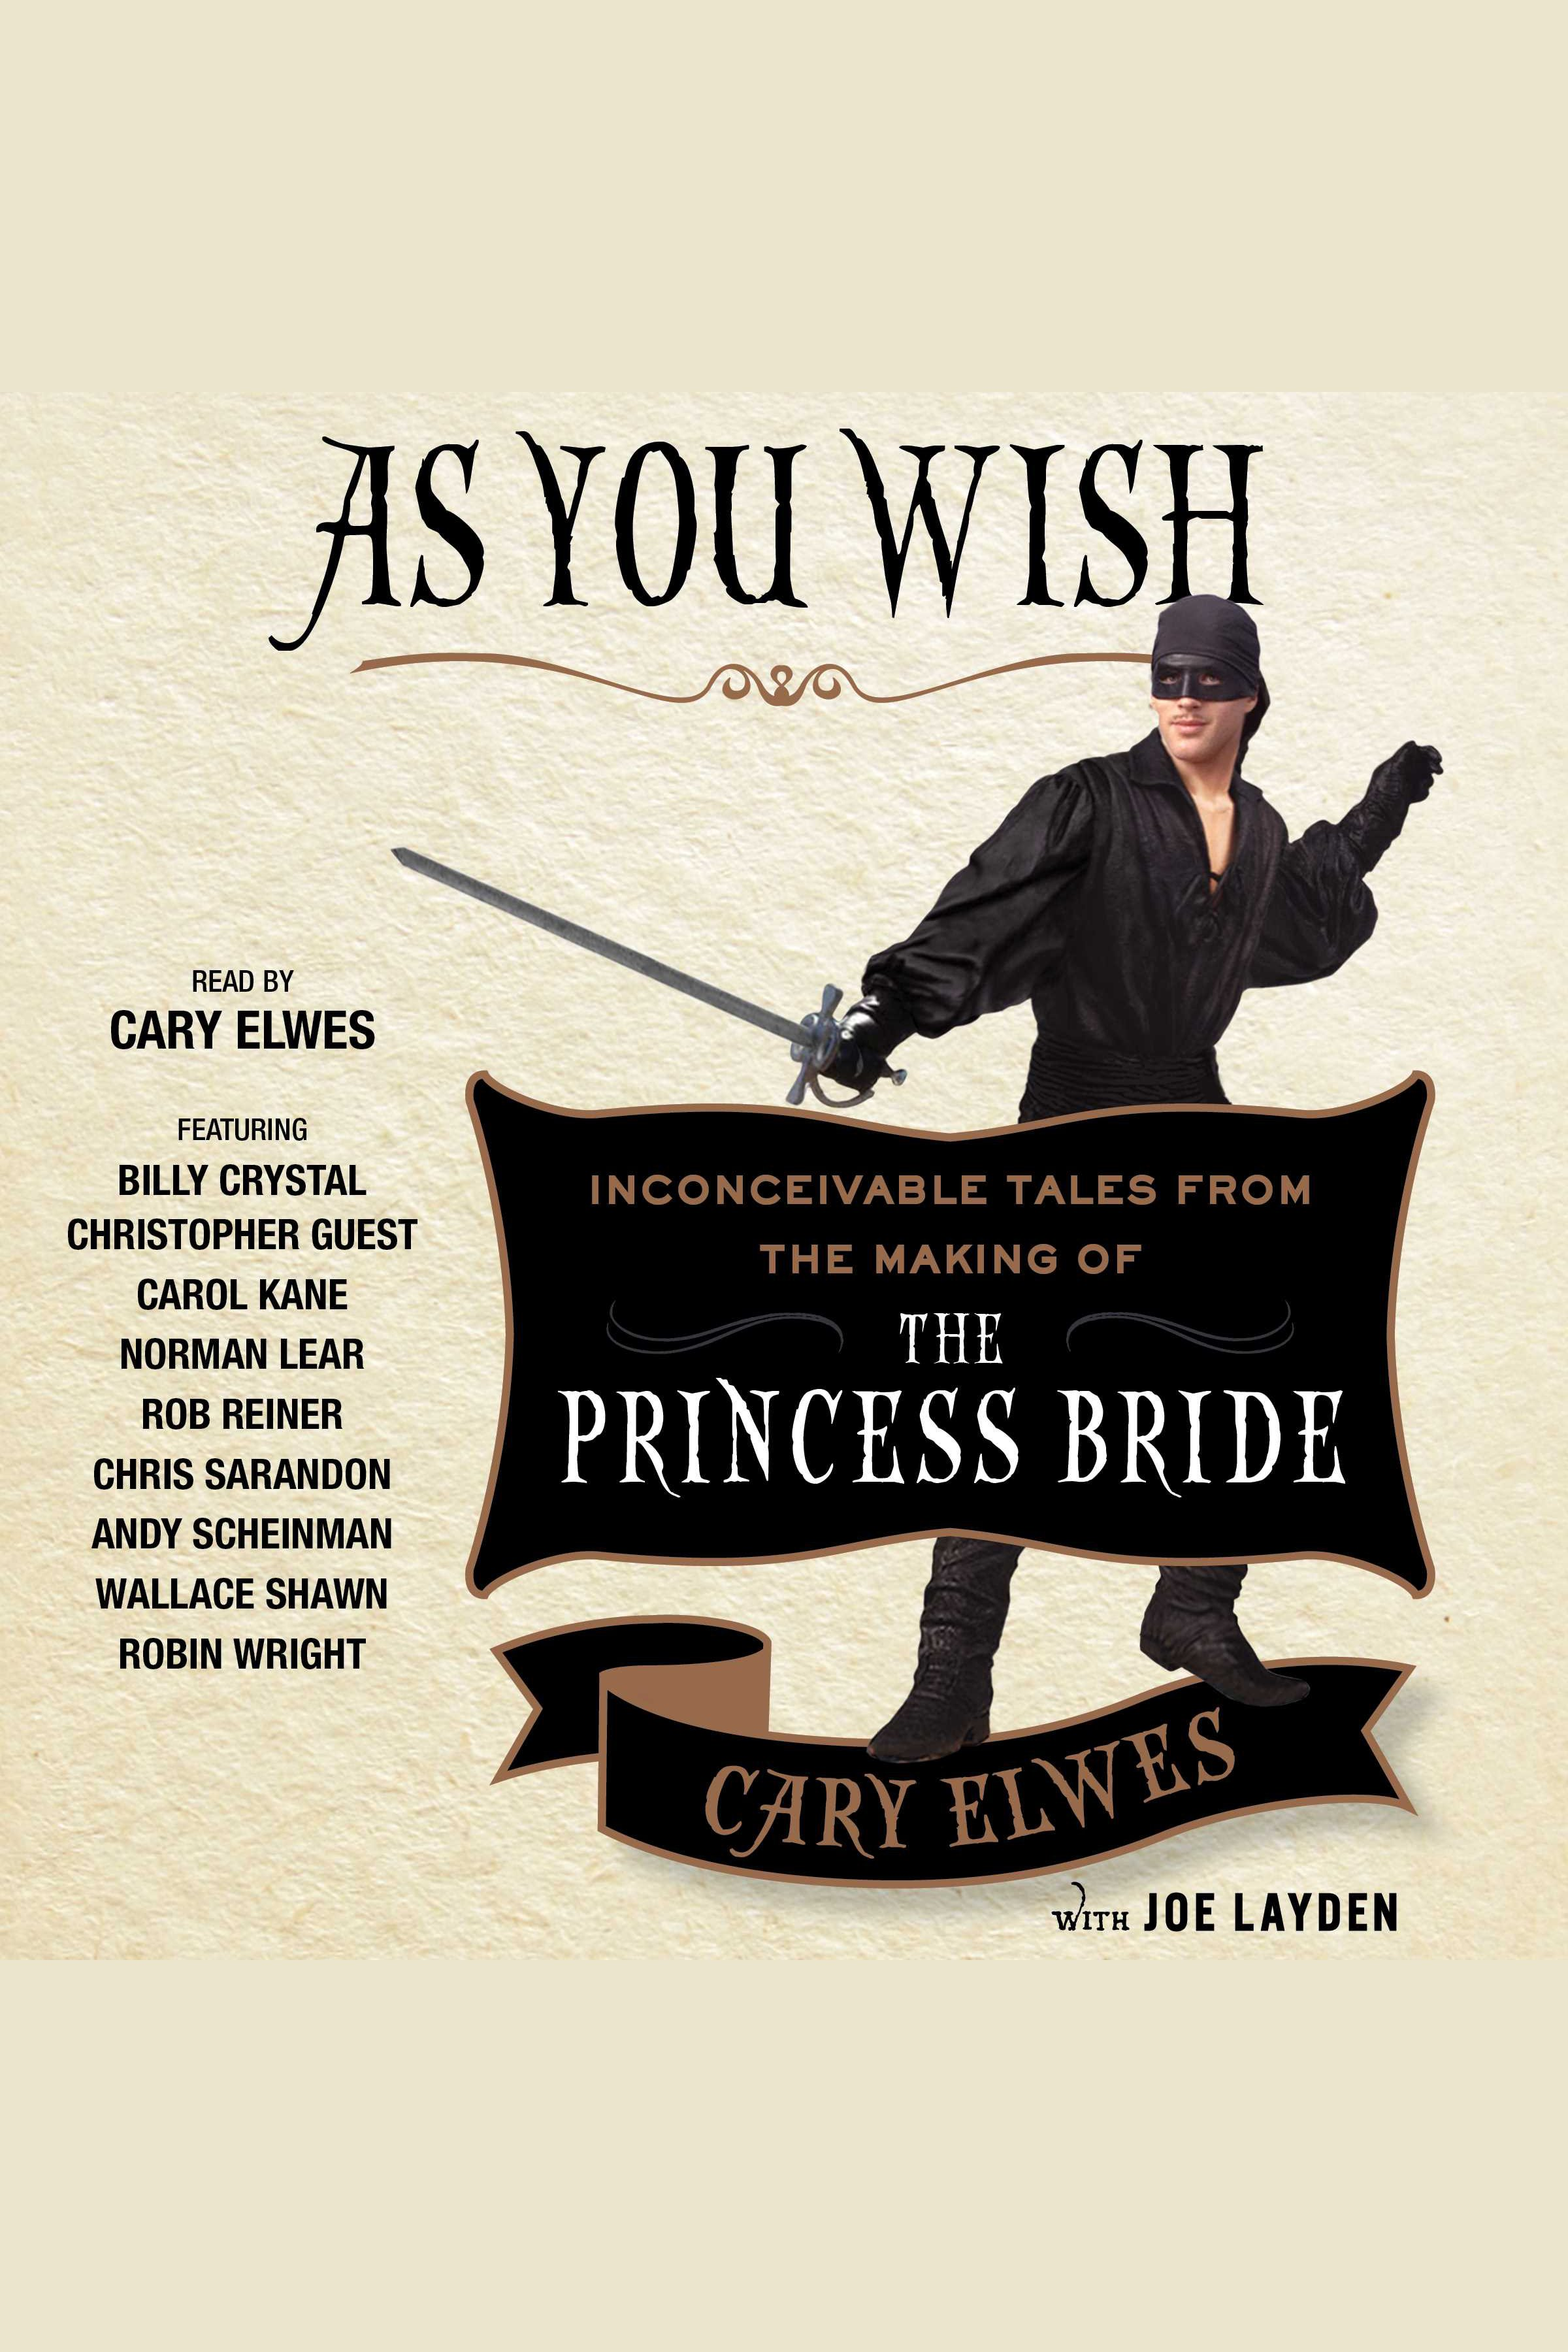 As you wish inconceivable tales from the making of the Princess Bride cover image